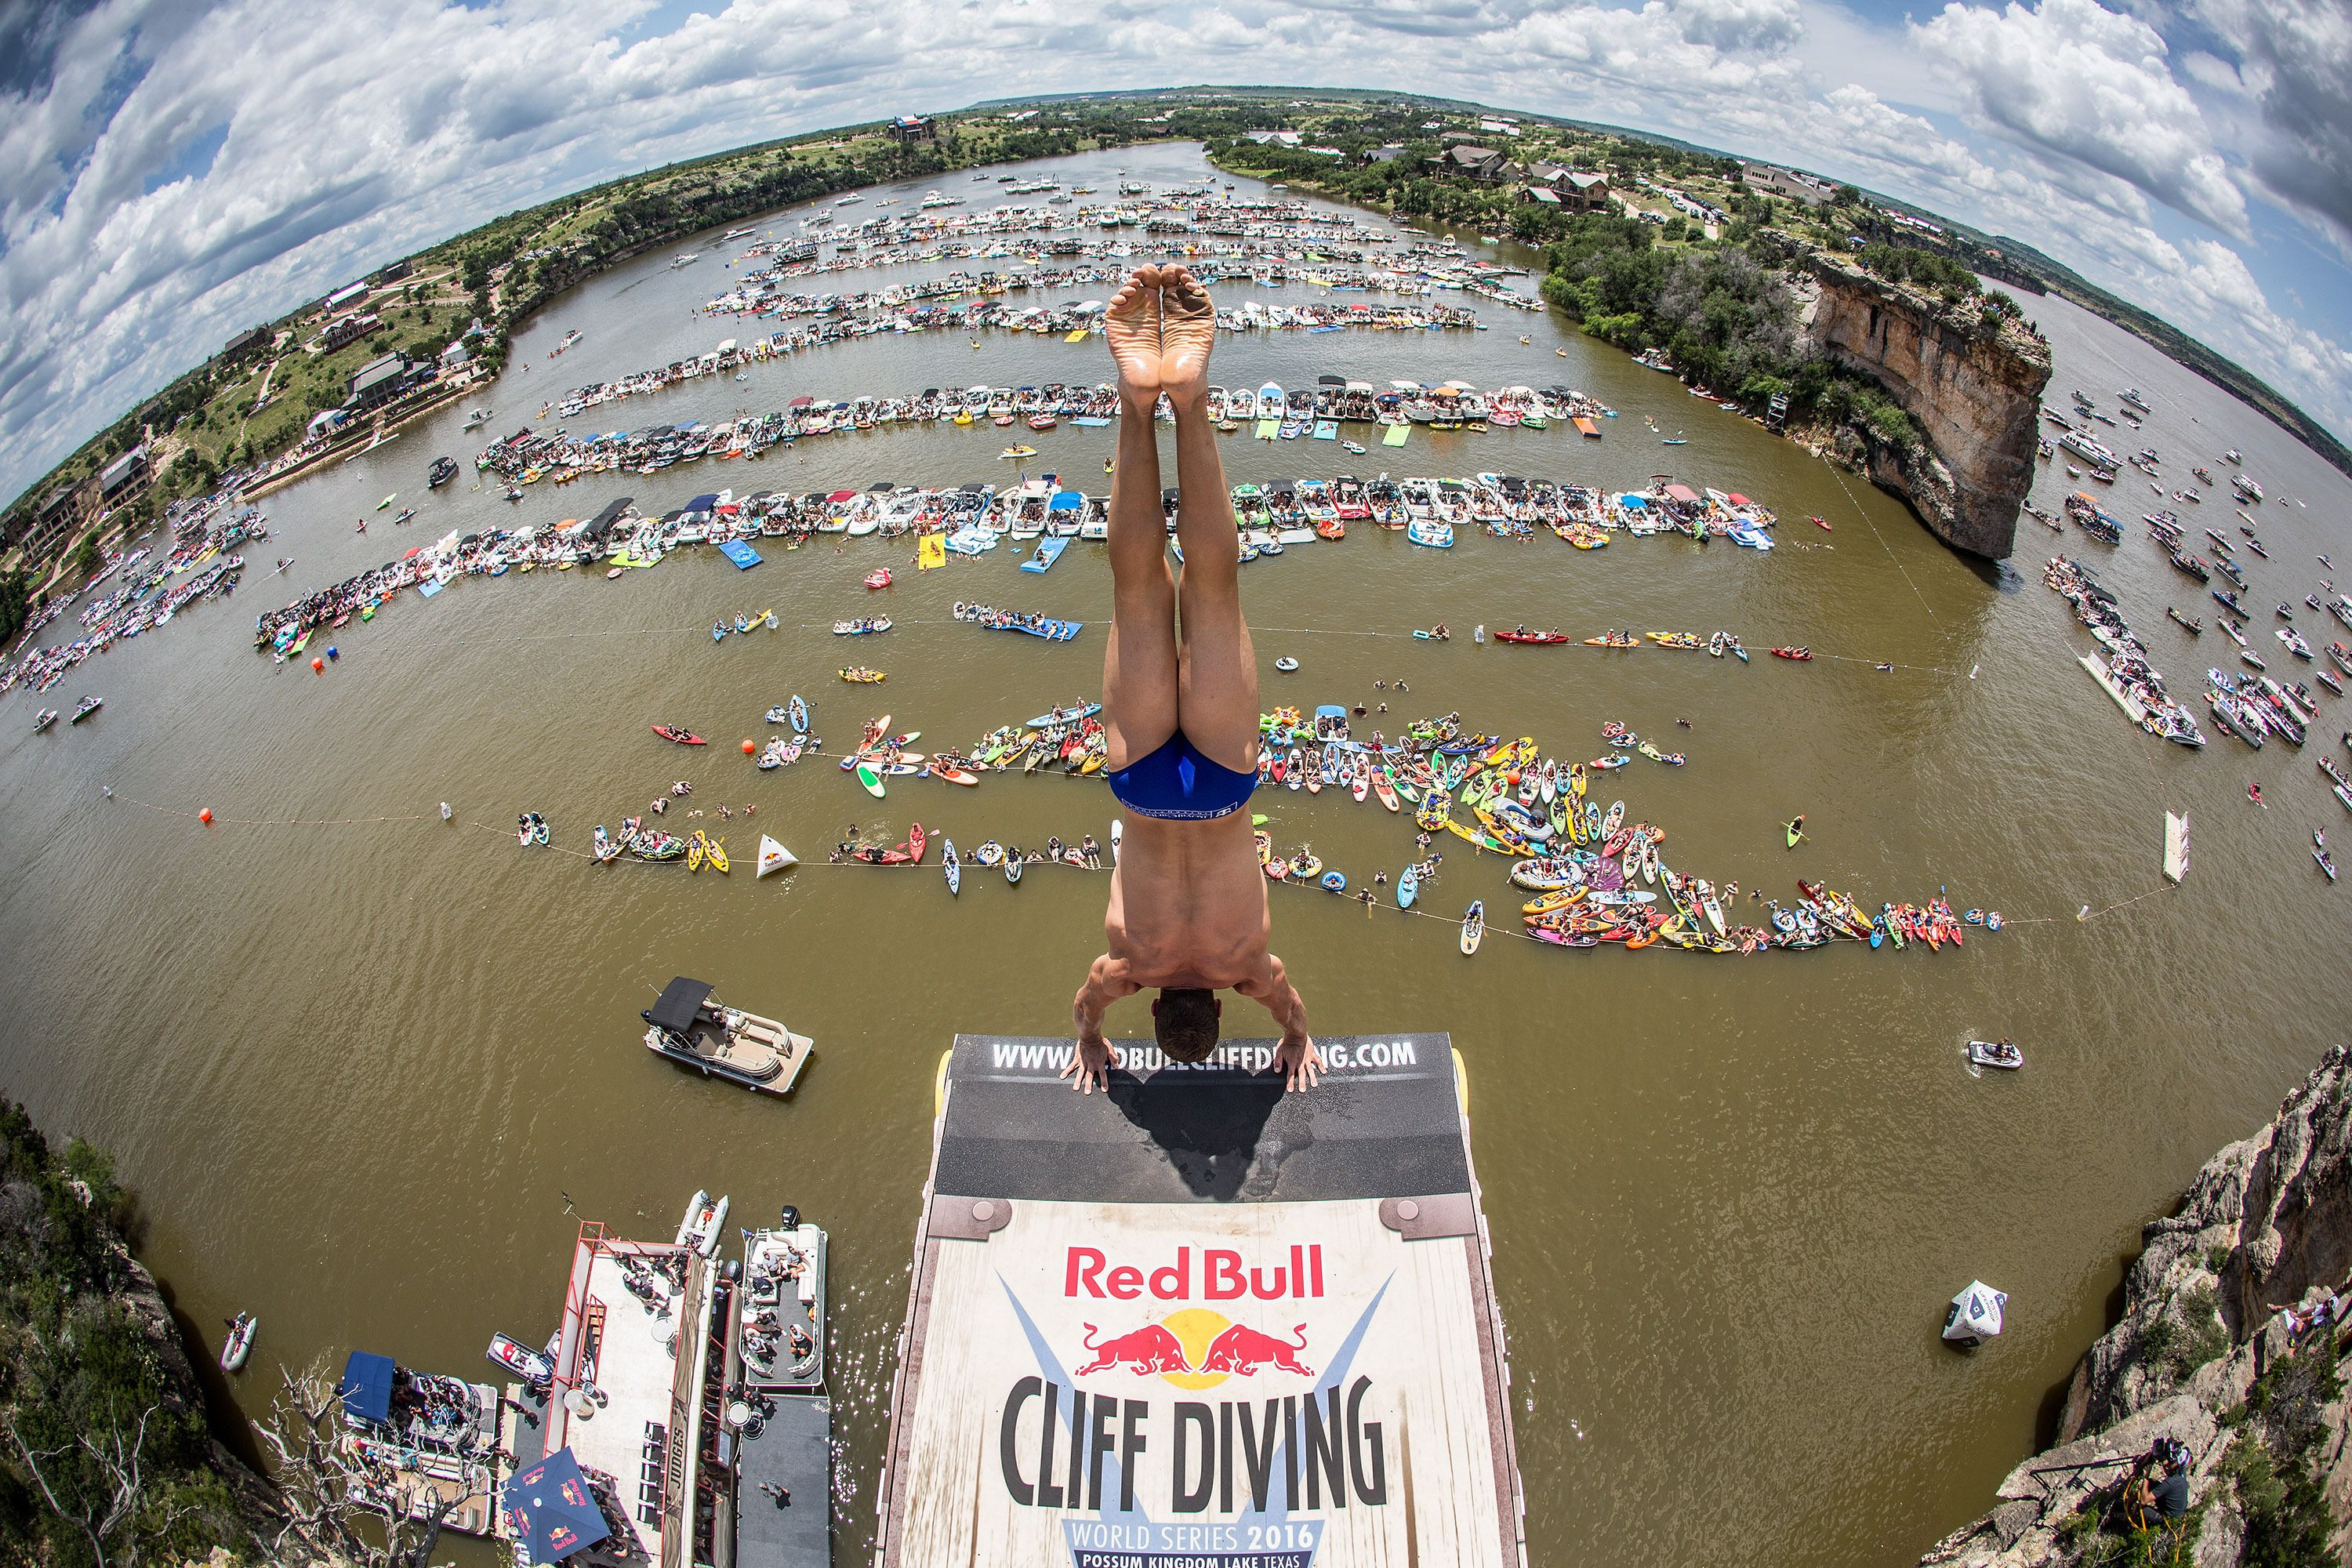 Man poised to take a handstand dive for the Red Bull cliff diving challenge.